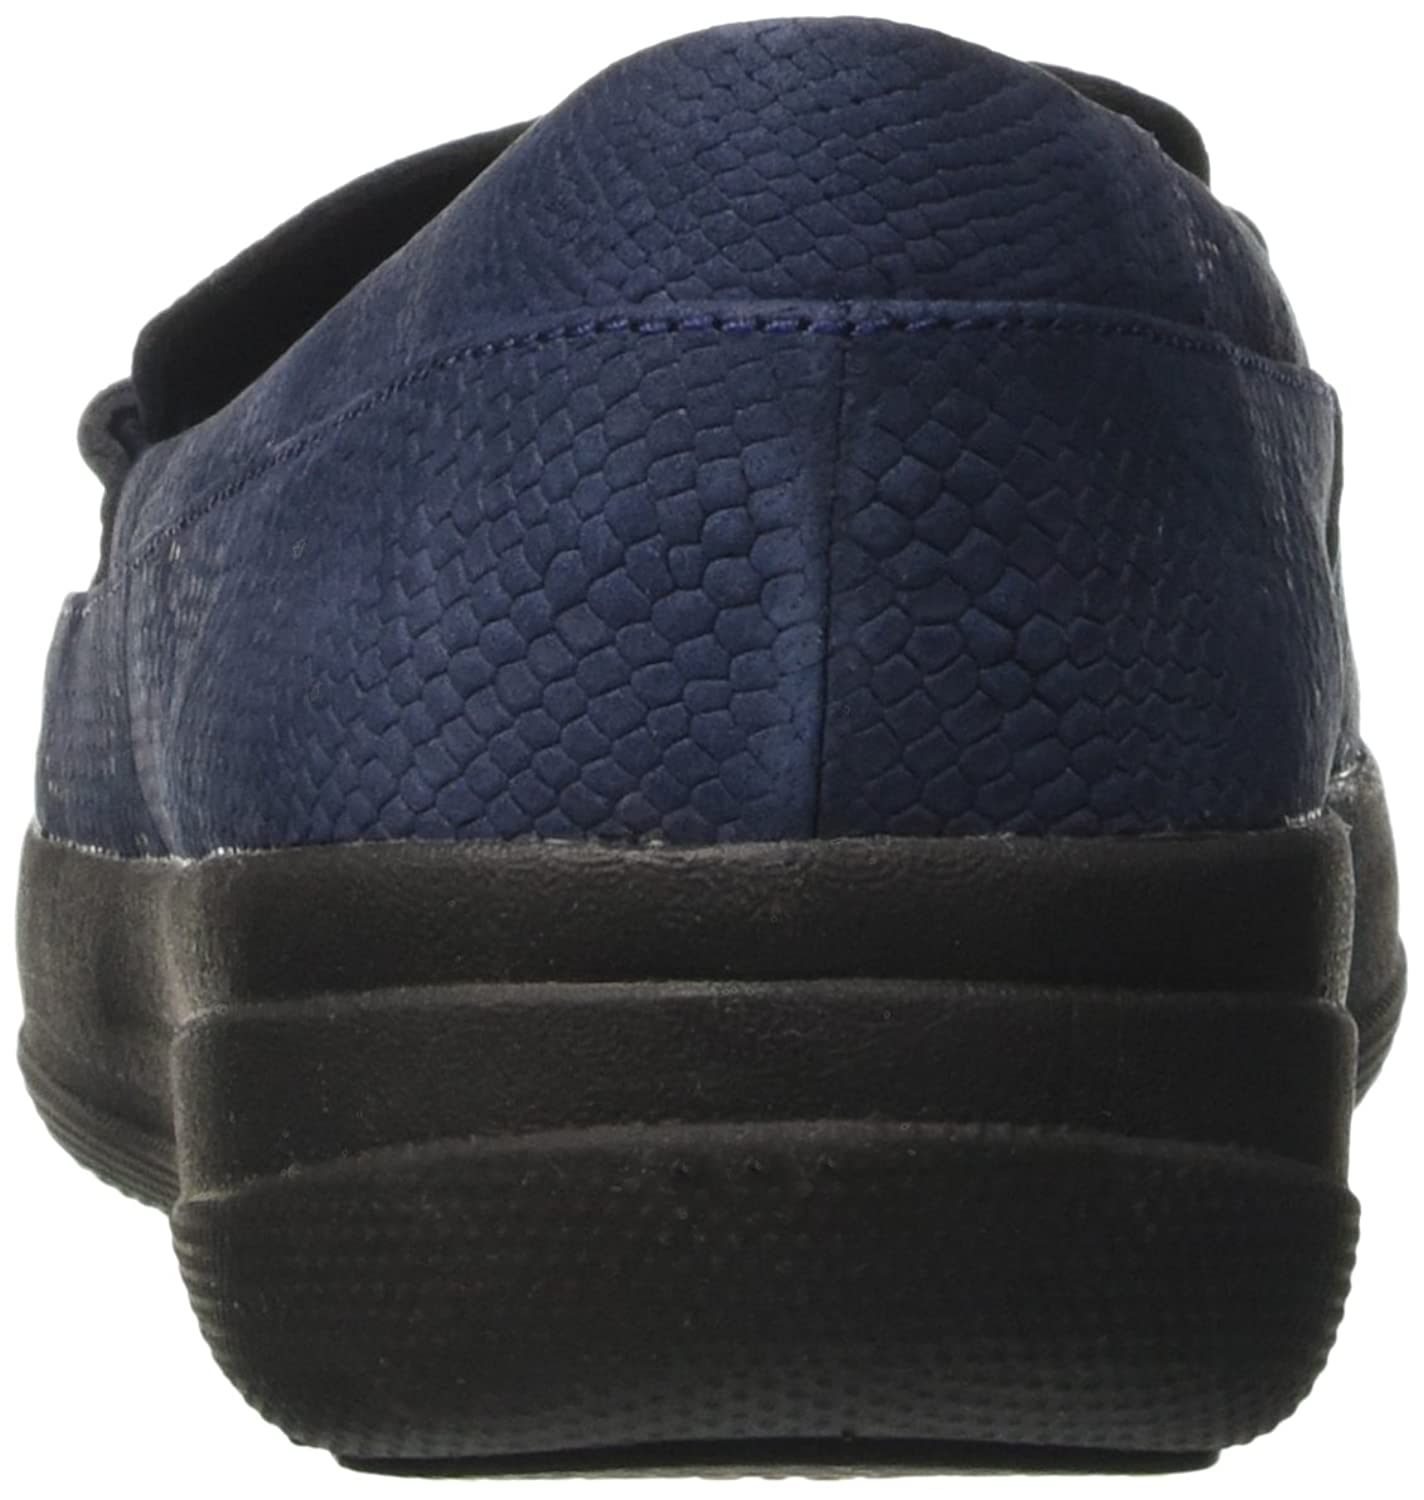 F-Sporty Penny Loafer Snake, Mocasines para Mujer, Azul (Midnight Navy Snake-Embossed), 36 FitFlop